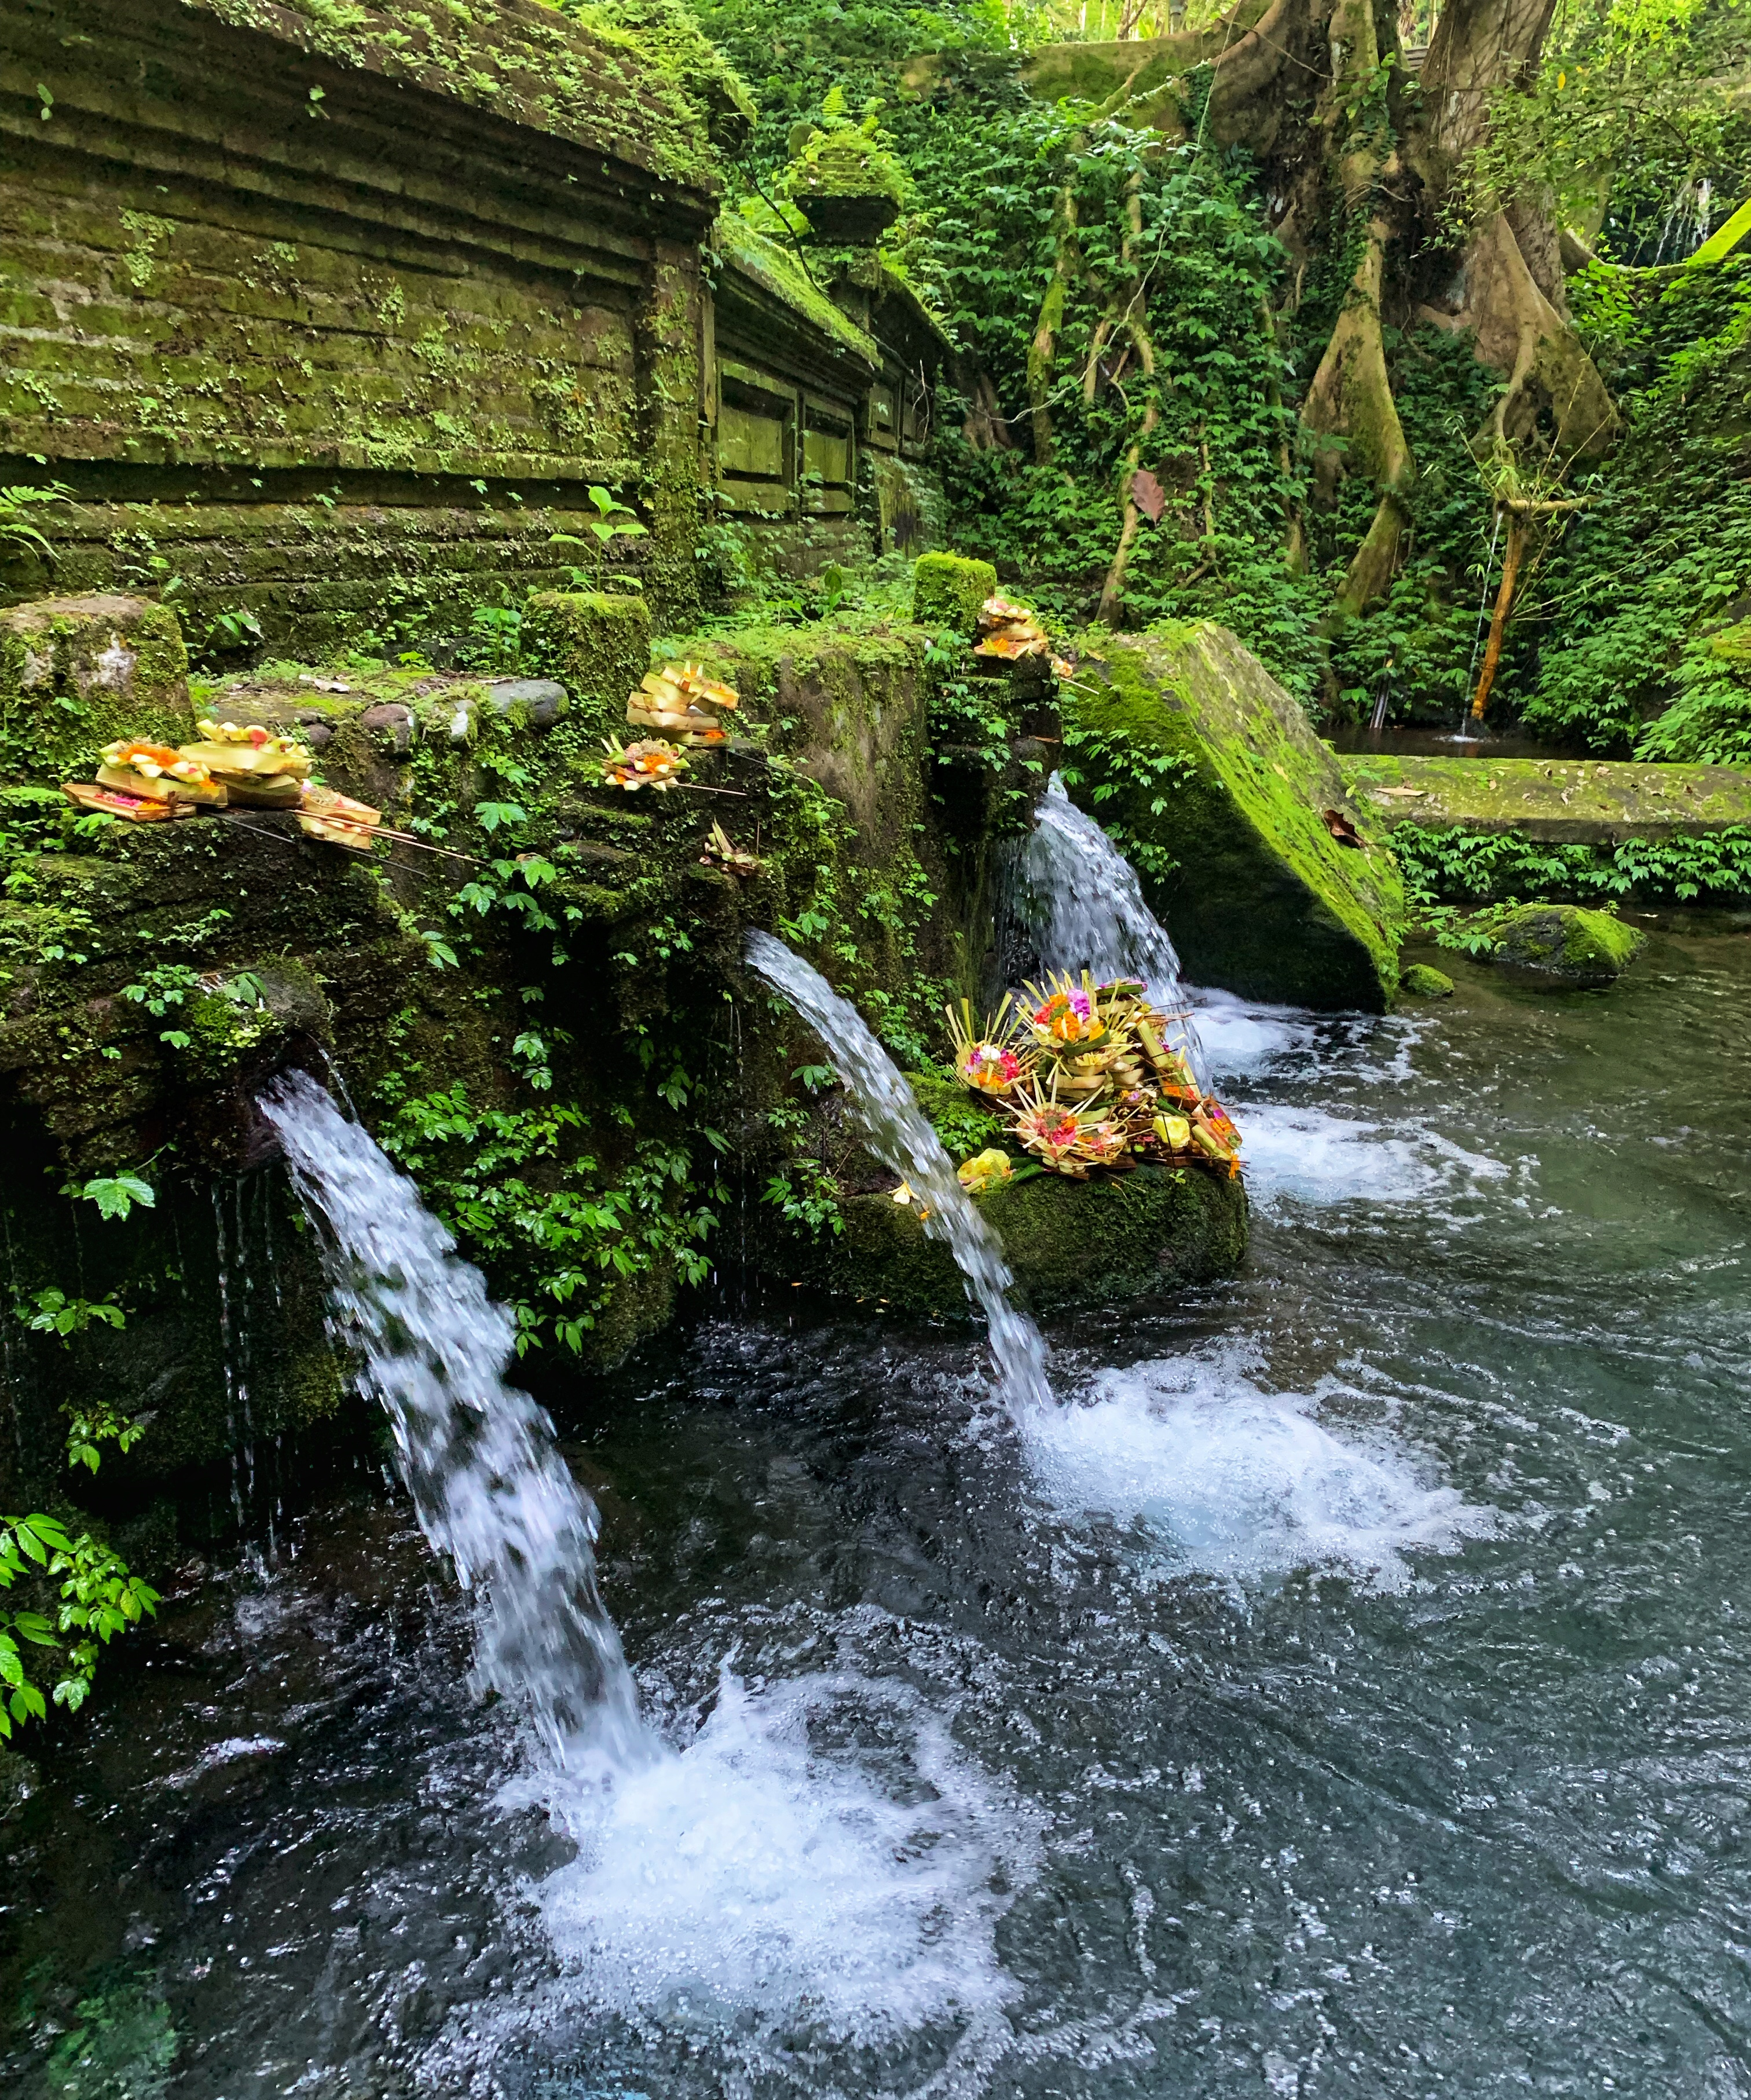 A Hindu water temple in Bali Indonesia for water purification ritual